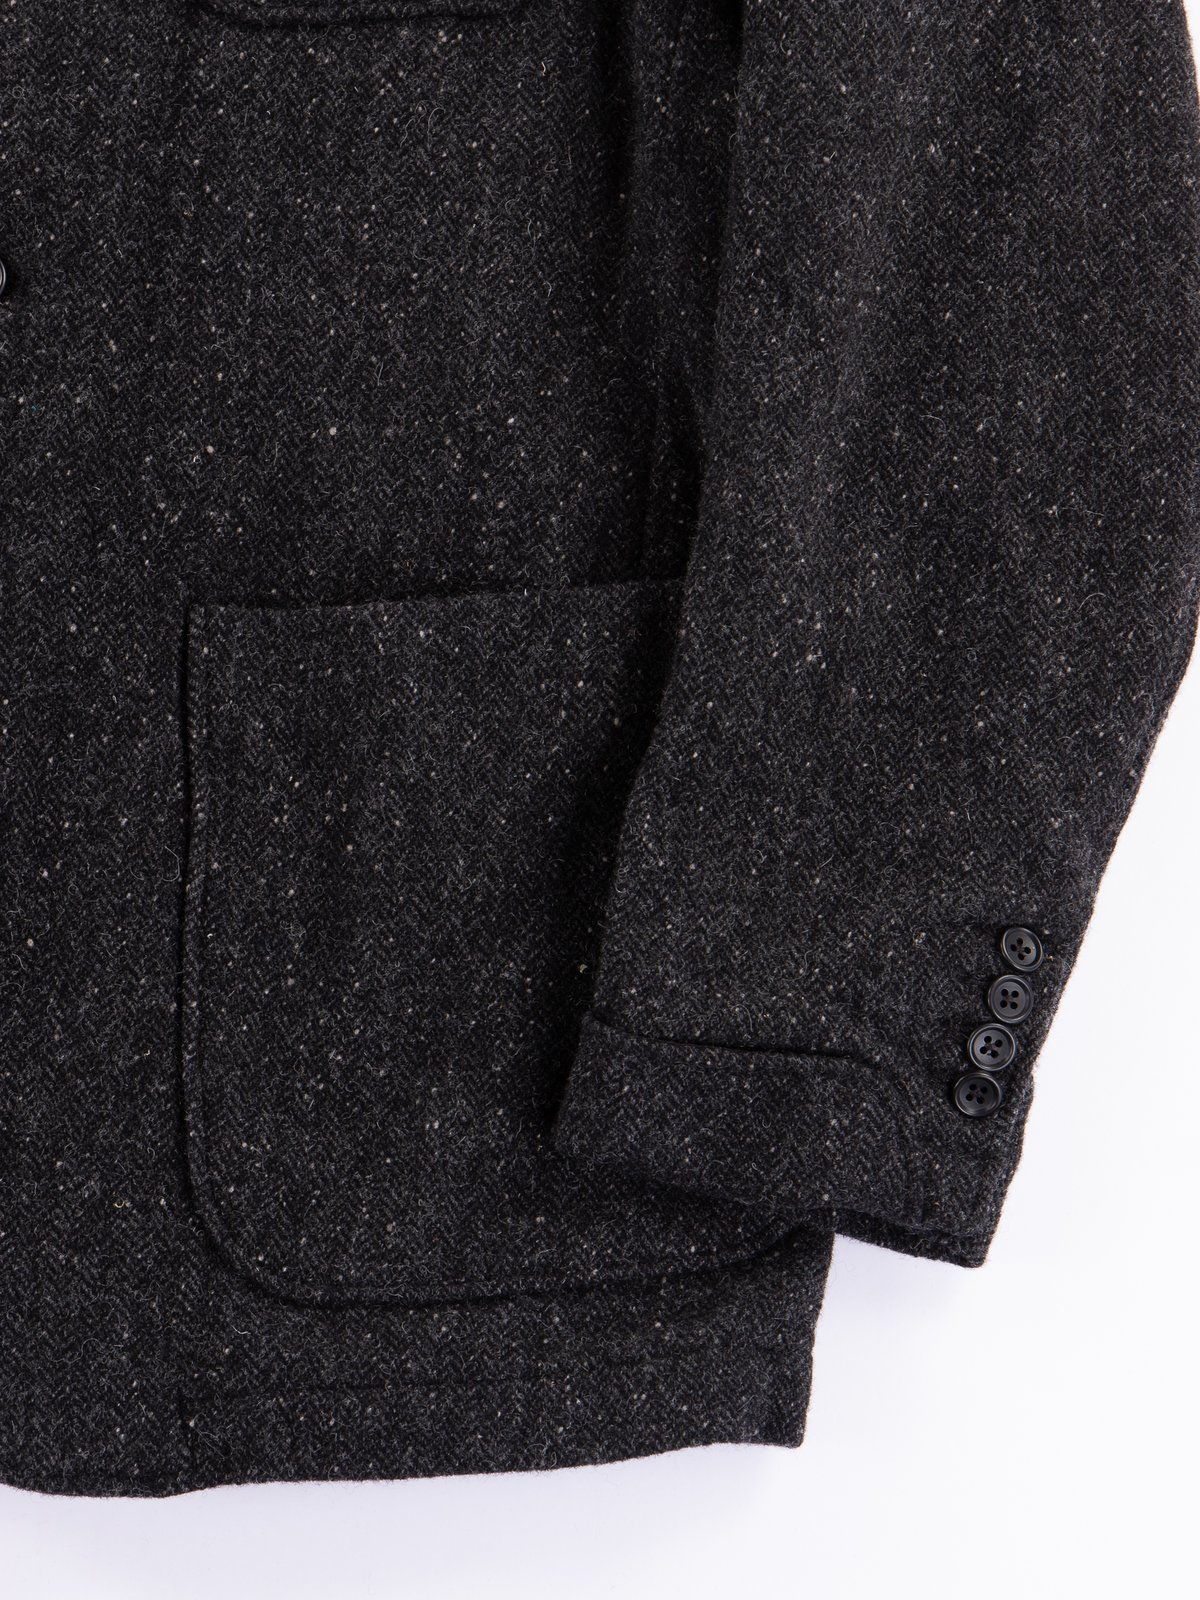 Charcoal HB Tweed Grim Jacket - Image 5